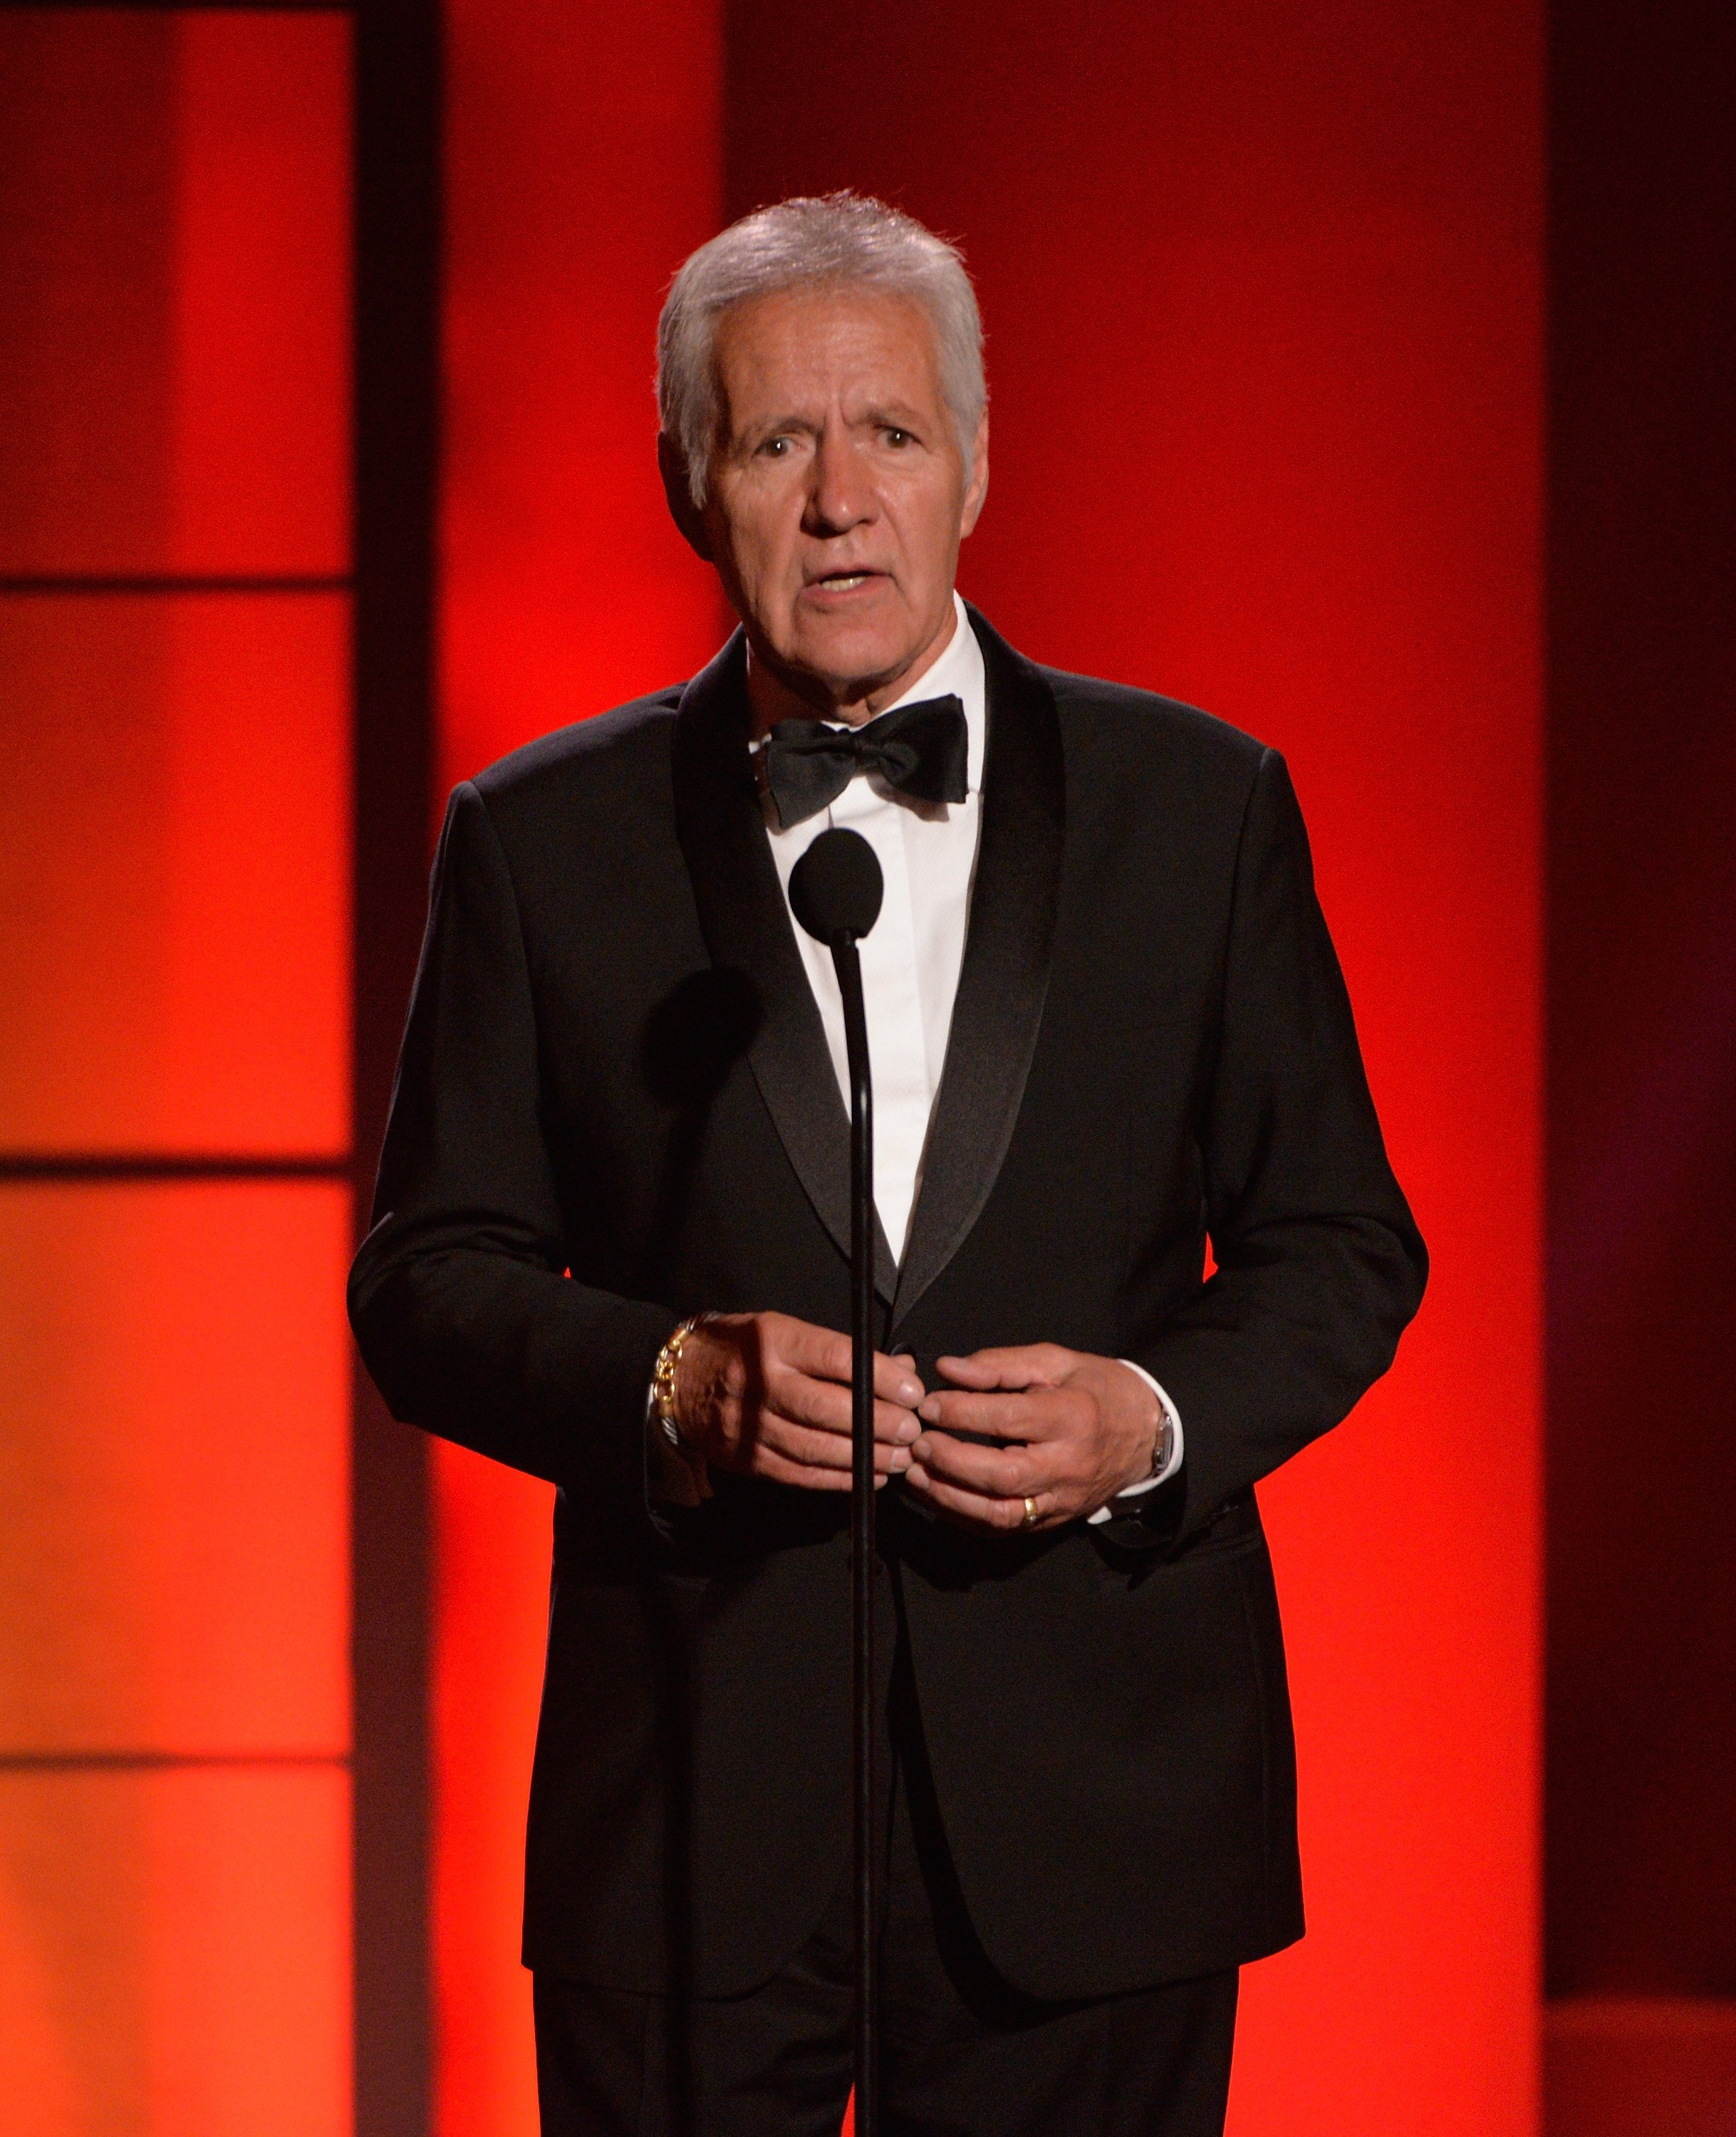 Alex Trebek speaking at the 44th annual Daytime Emmy Awards in Pasadena, California | Photo: Getty Images